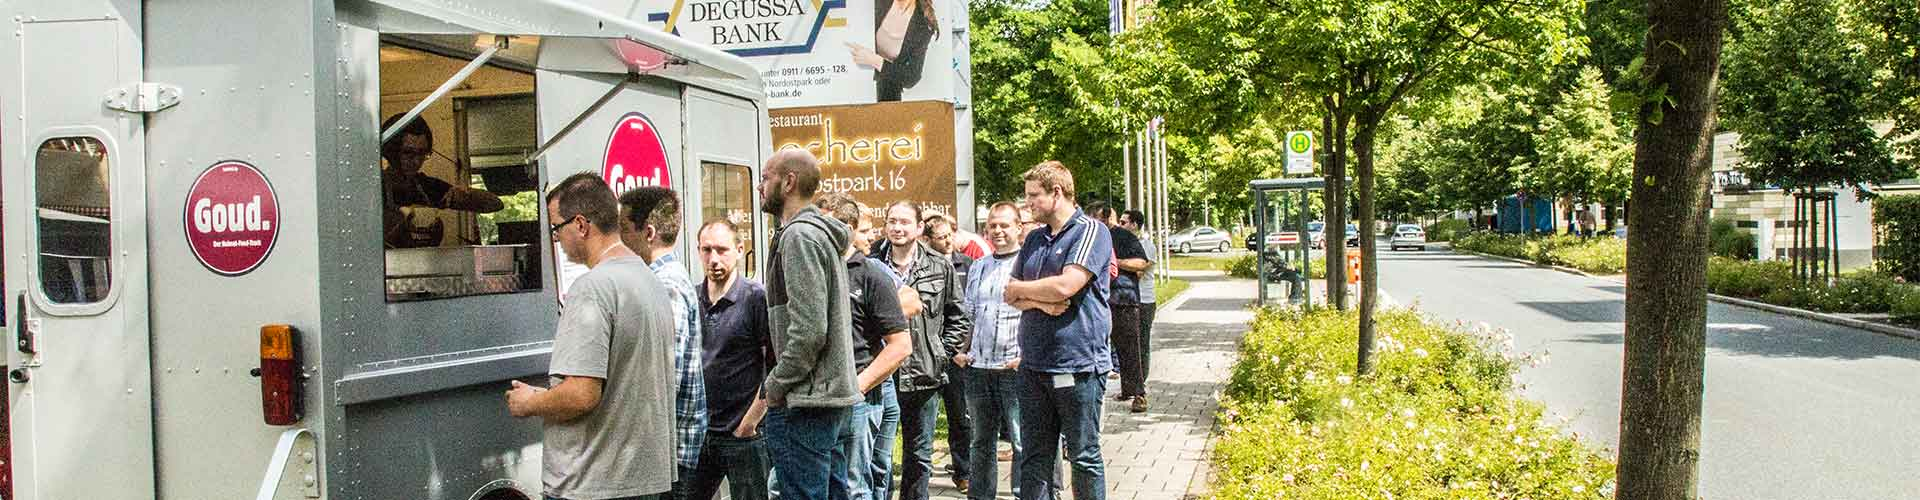 Street Food Kunden Foodtruck Goud